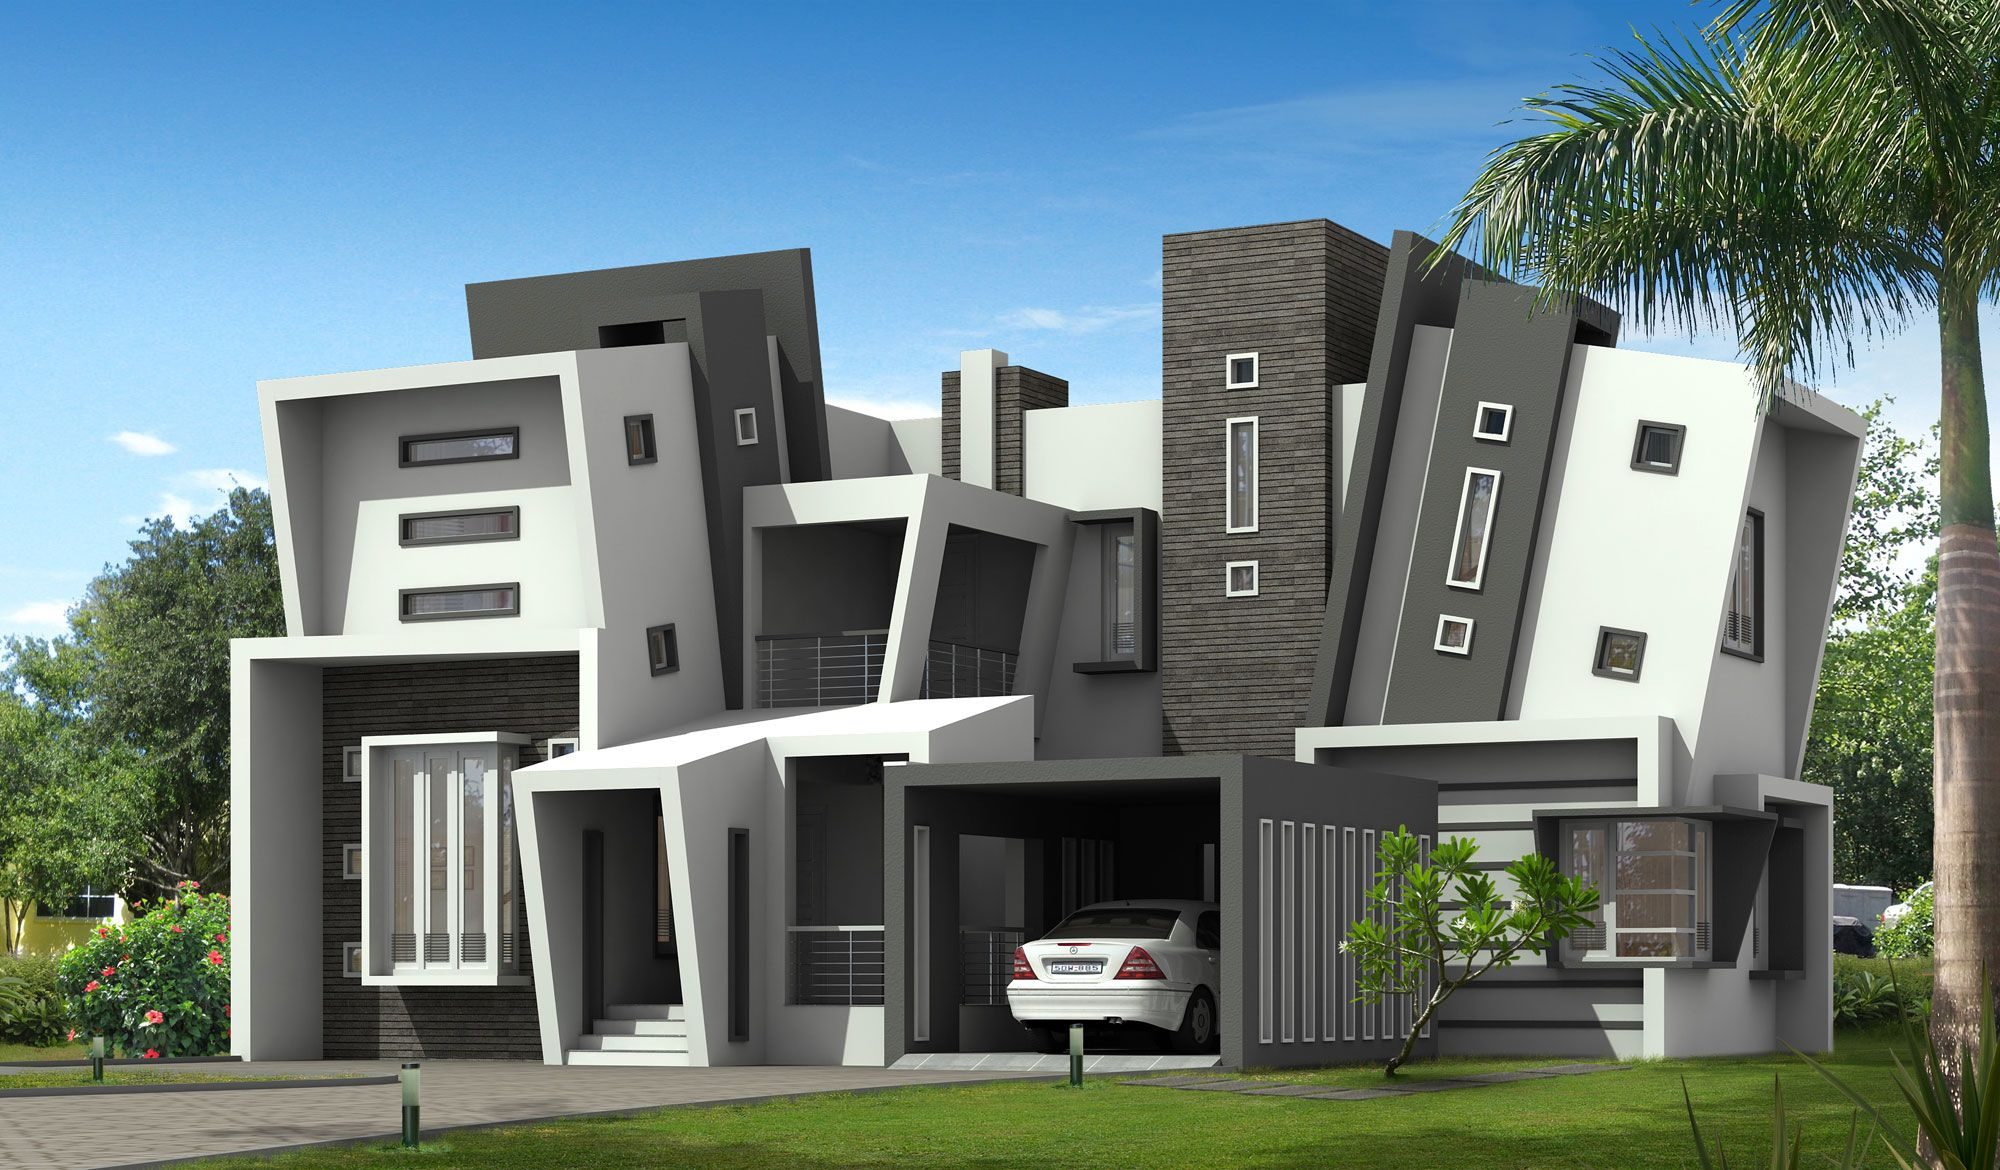 Awesome Exterior Design Of House For You The Exterior Component Of Your Home Is As Critical As The Kerala House Design Unique House Design Architecture House